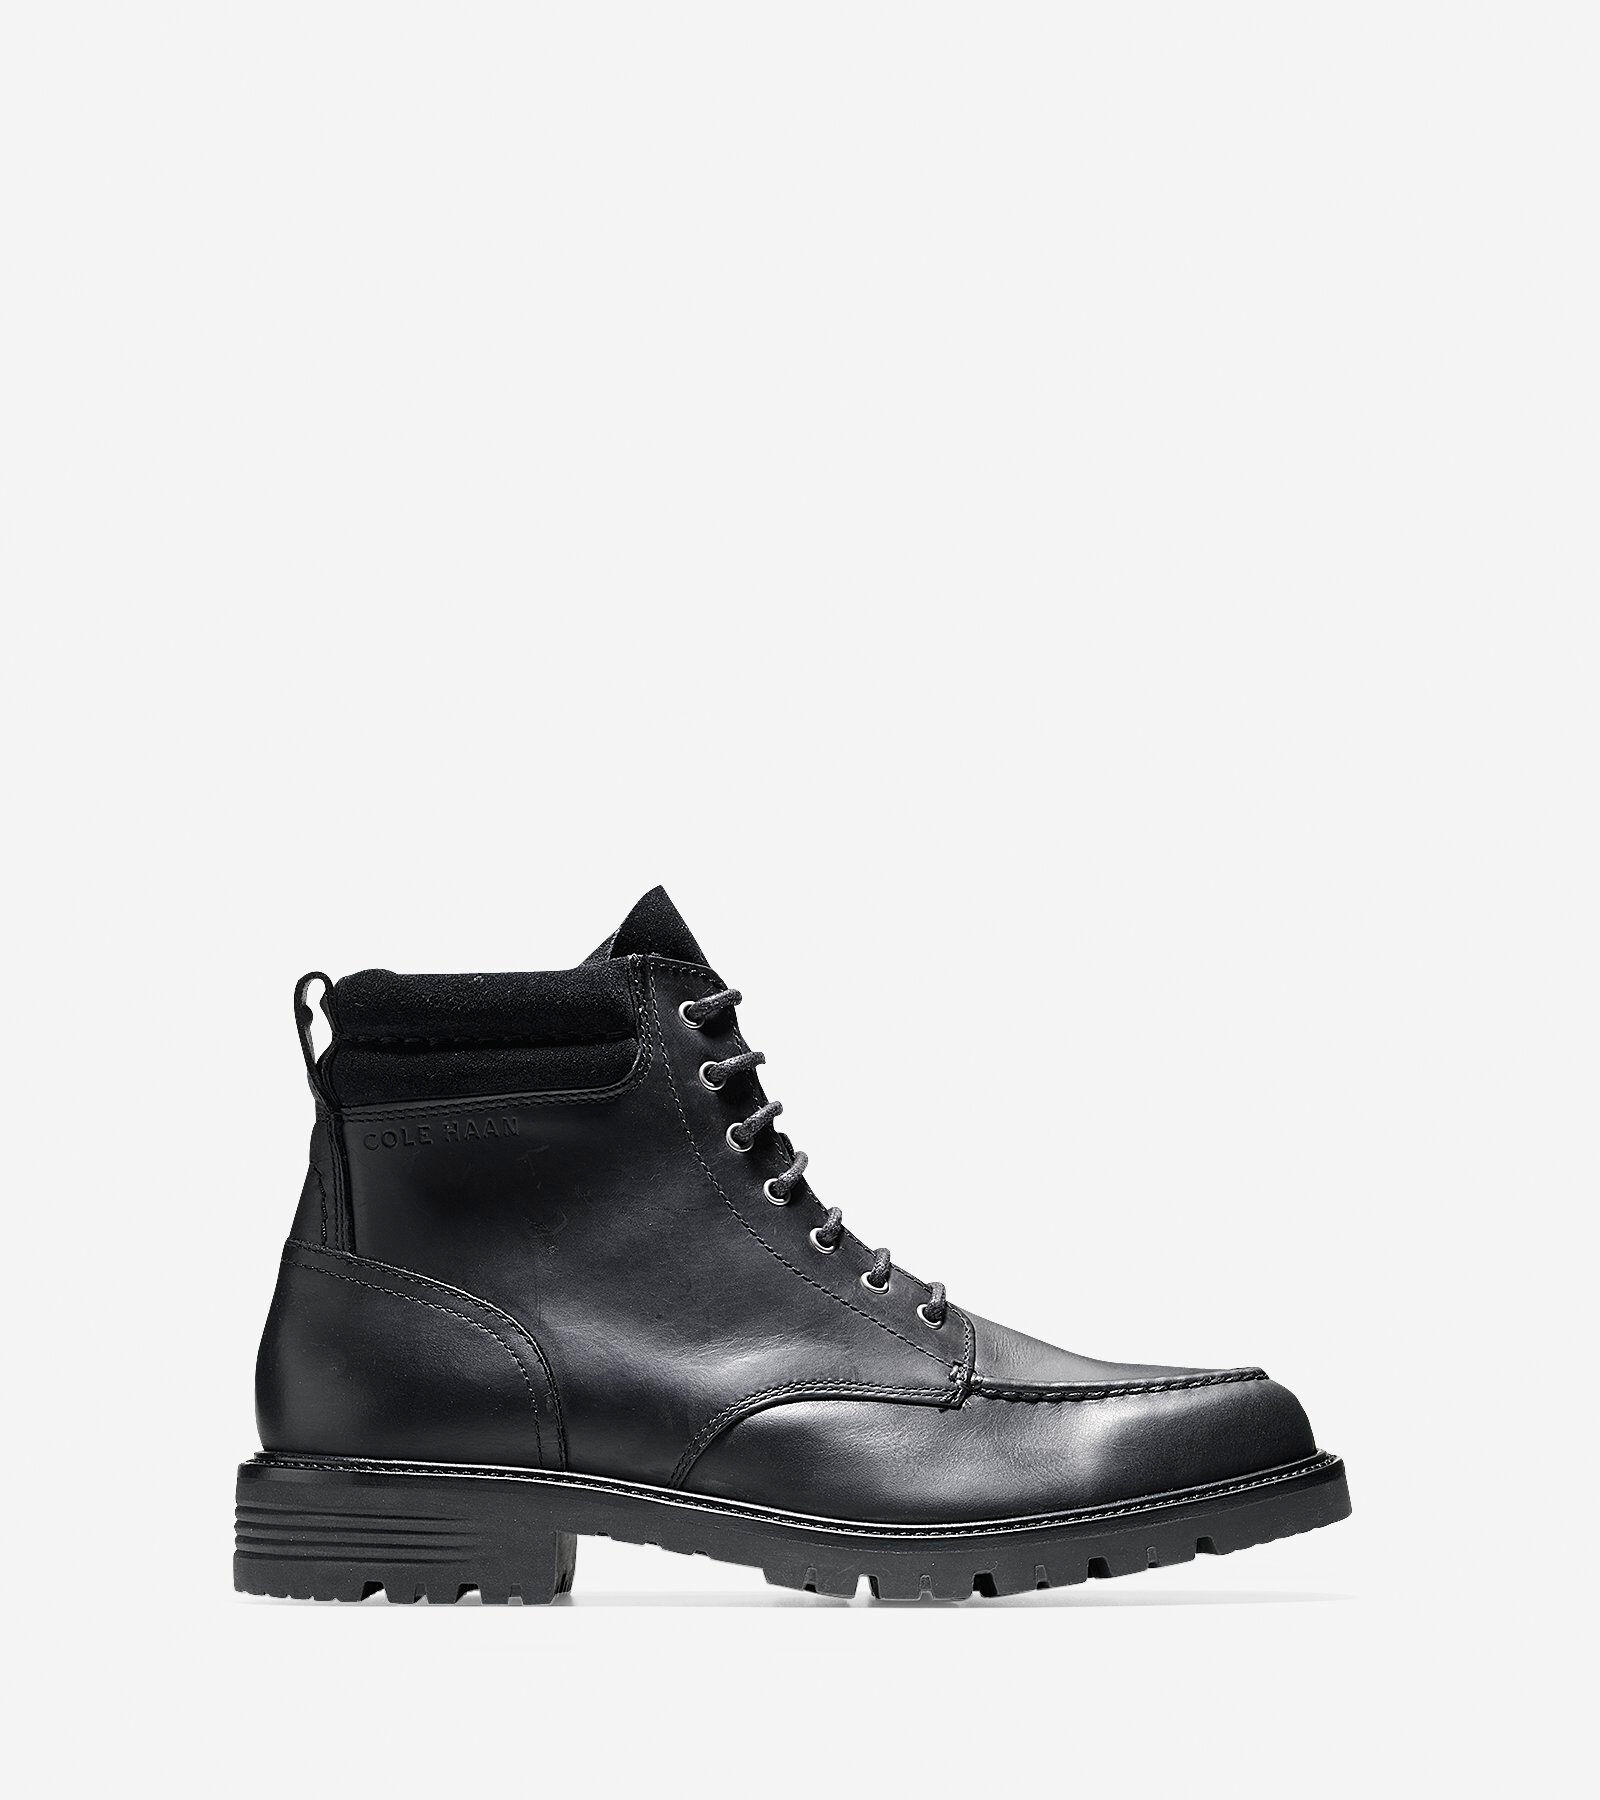 Cole Haan Grantland 6 Inch Lace-Up Water Proof lmhNBRToN